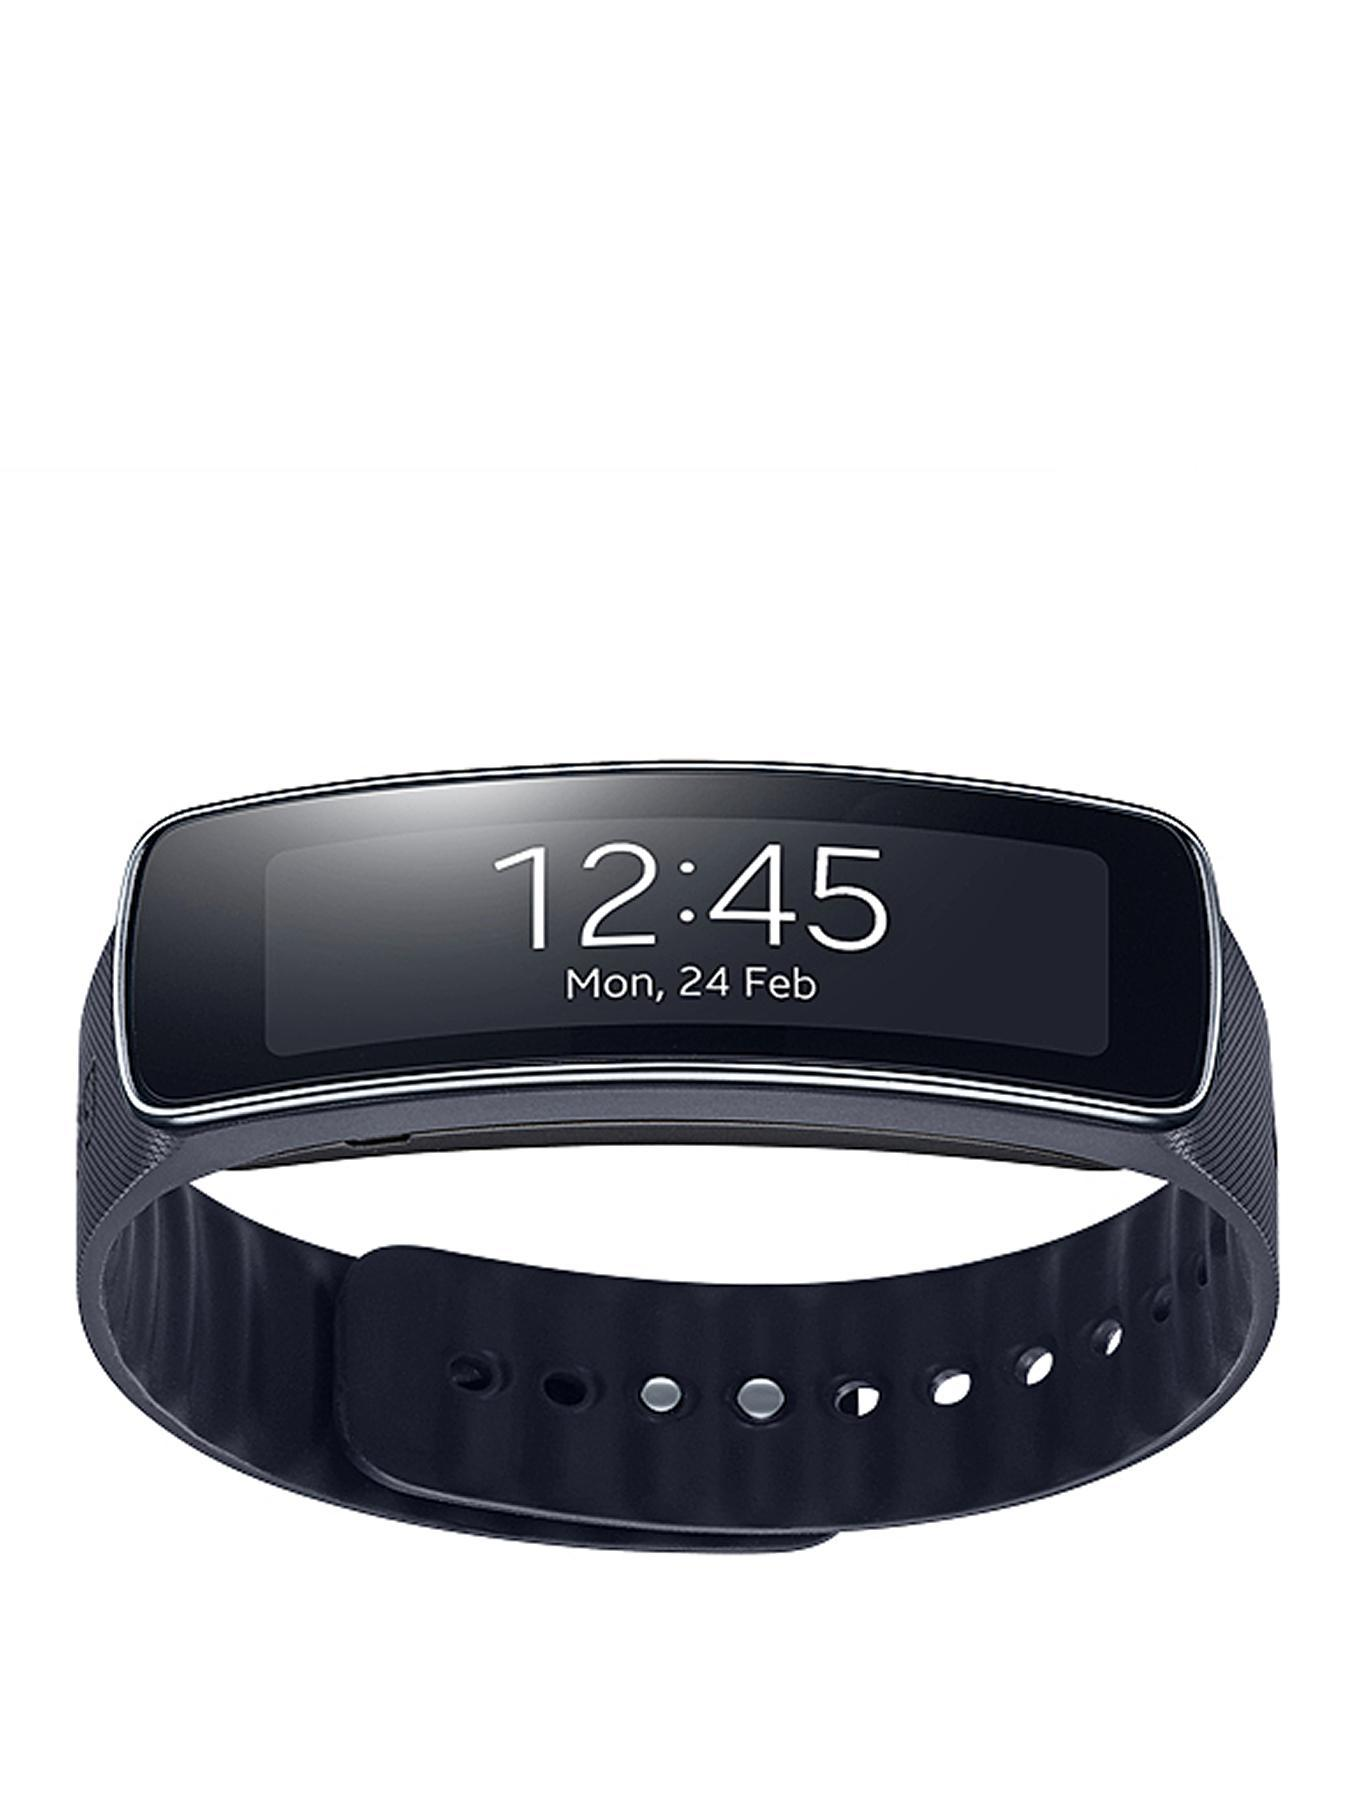 Samsung Gear Fit - Black, Orange,Black,Grey